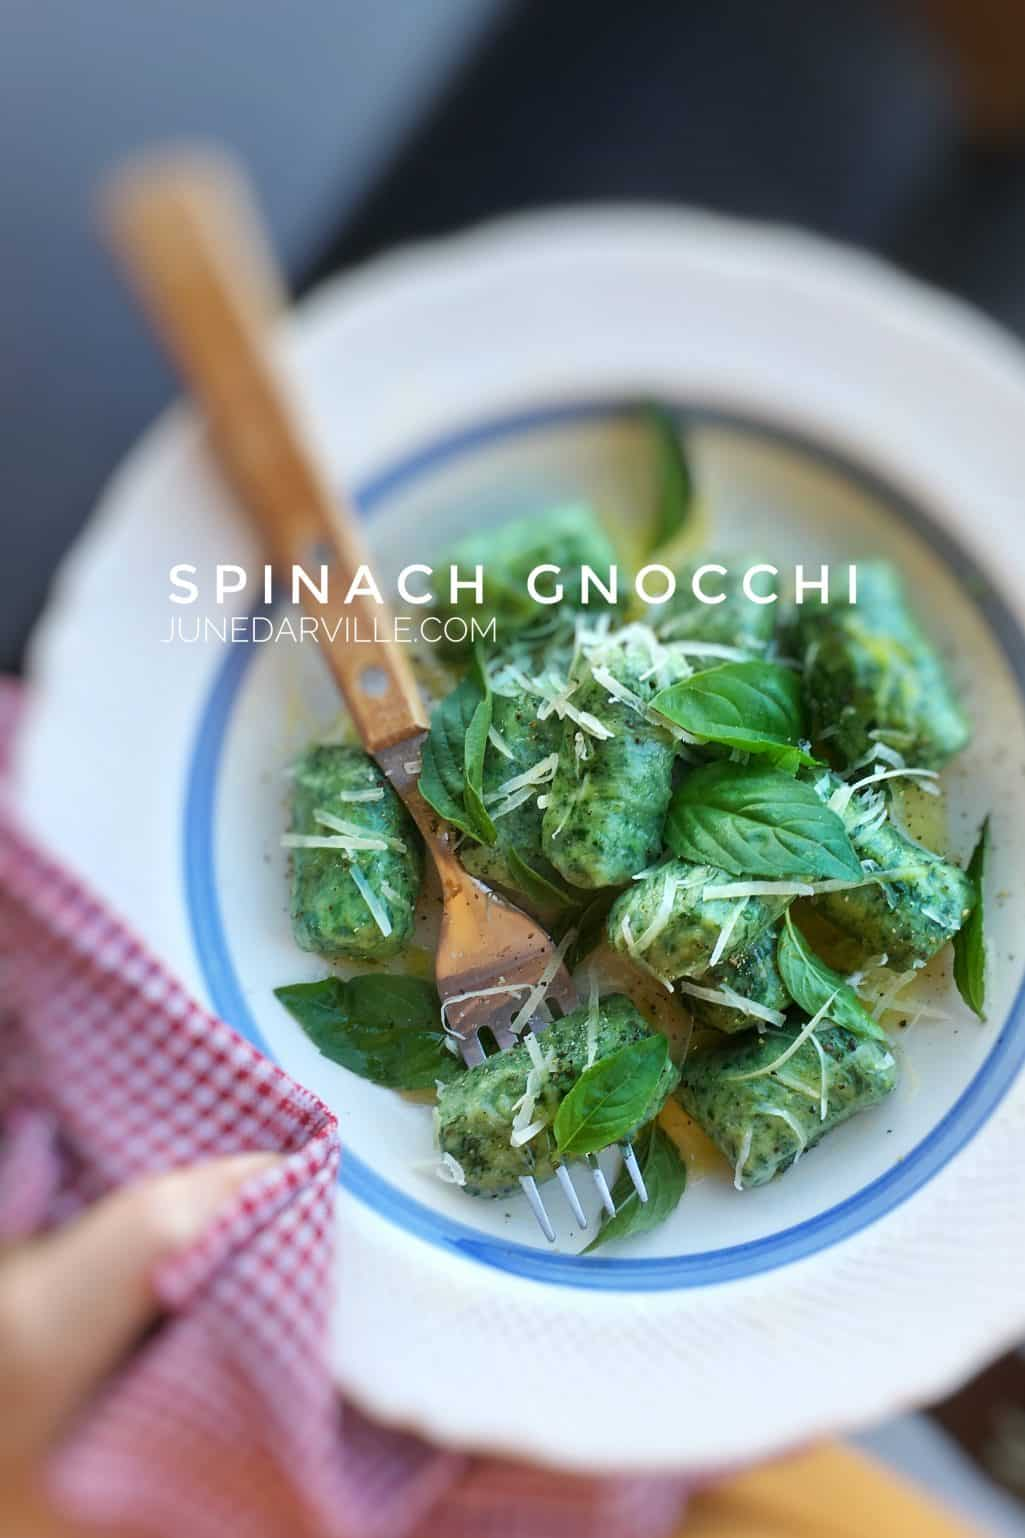 Watch my video of how I'm preparing these perfect potato spinach gnocchi recipe in my KitchenAid Stand Mixer Mini, from scratch!